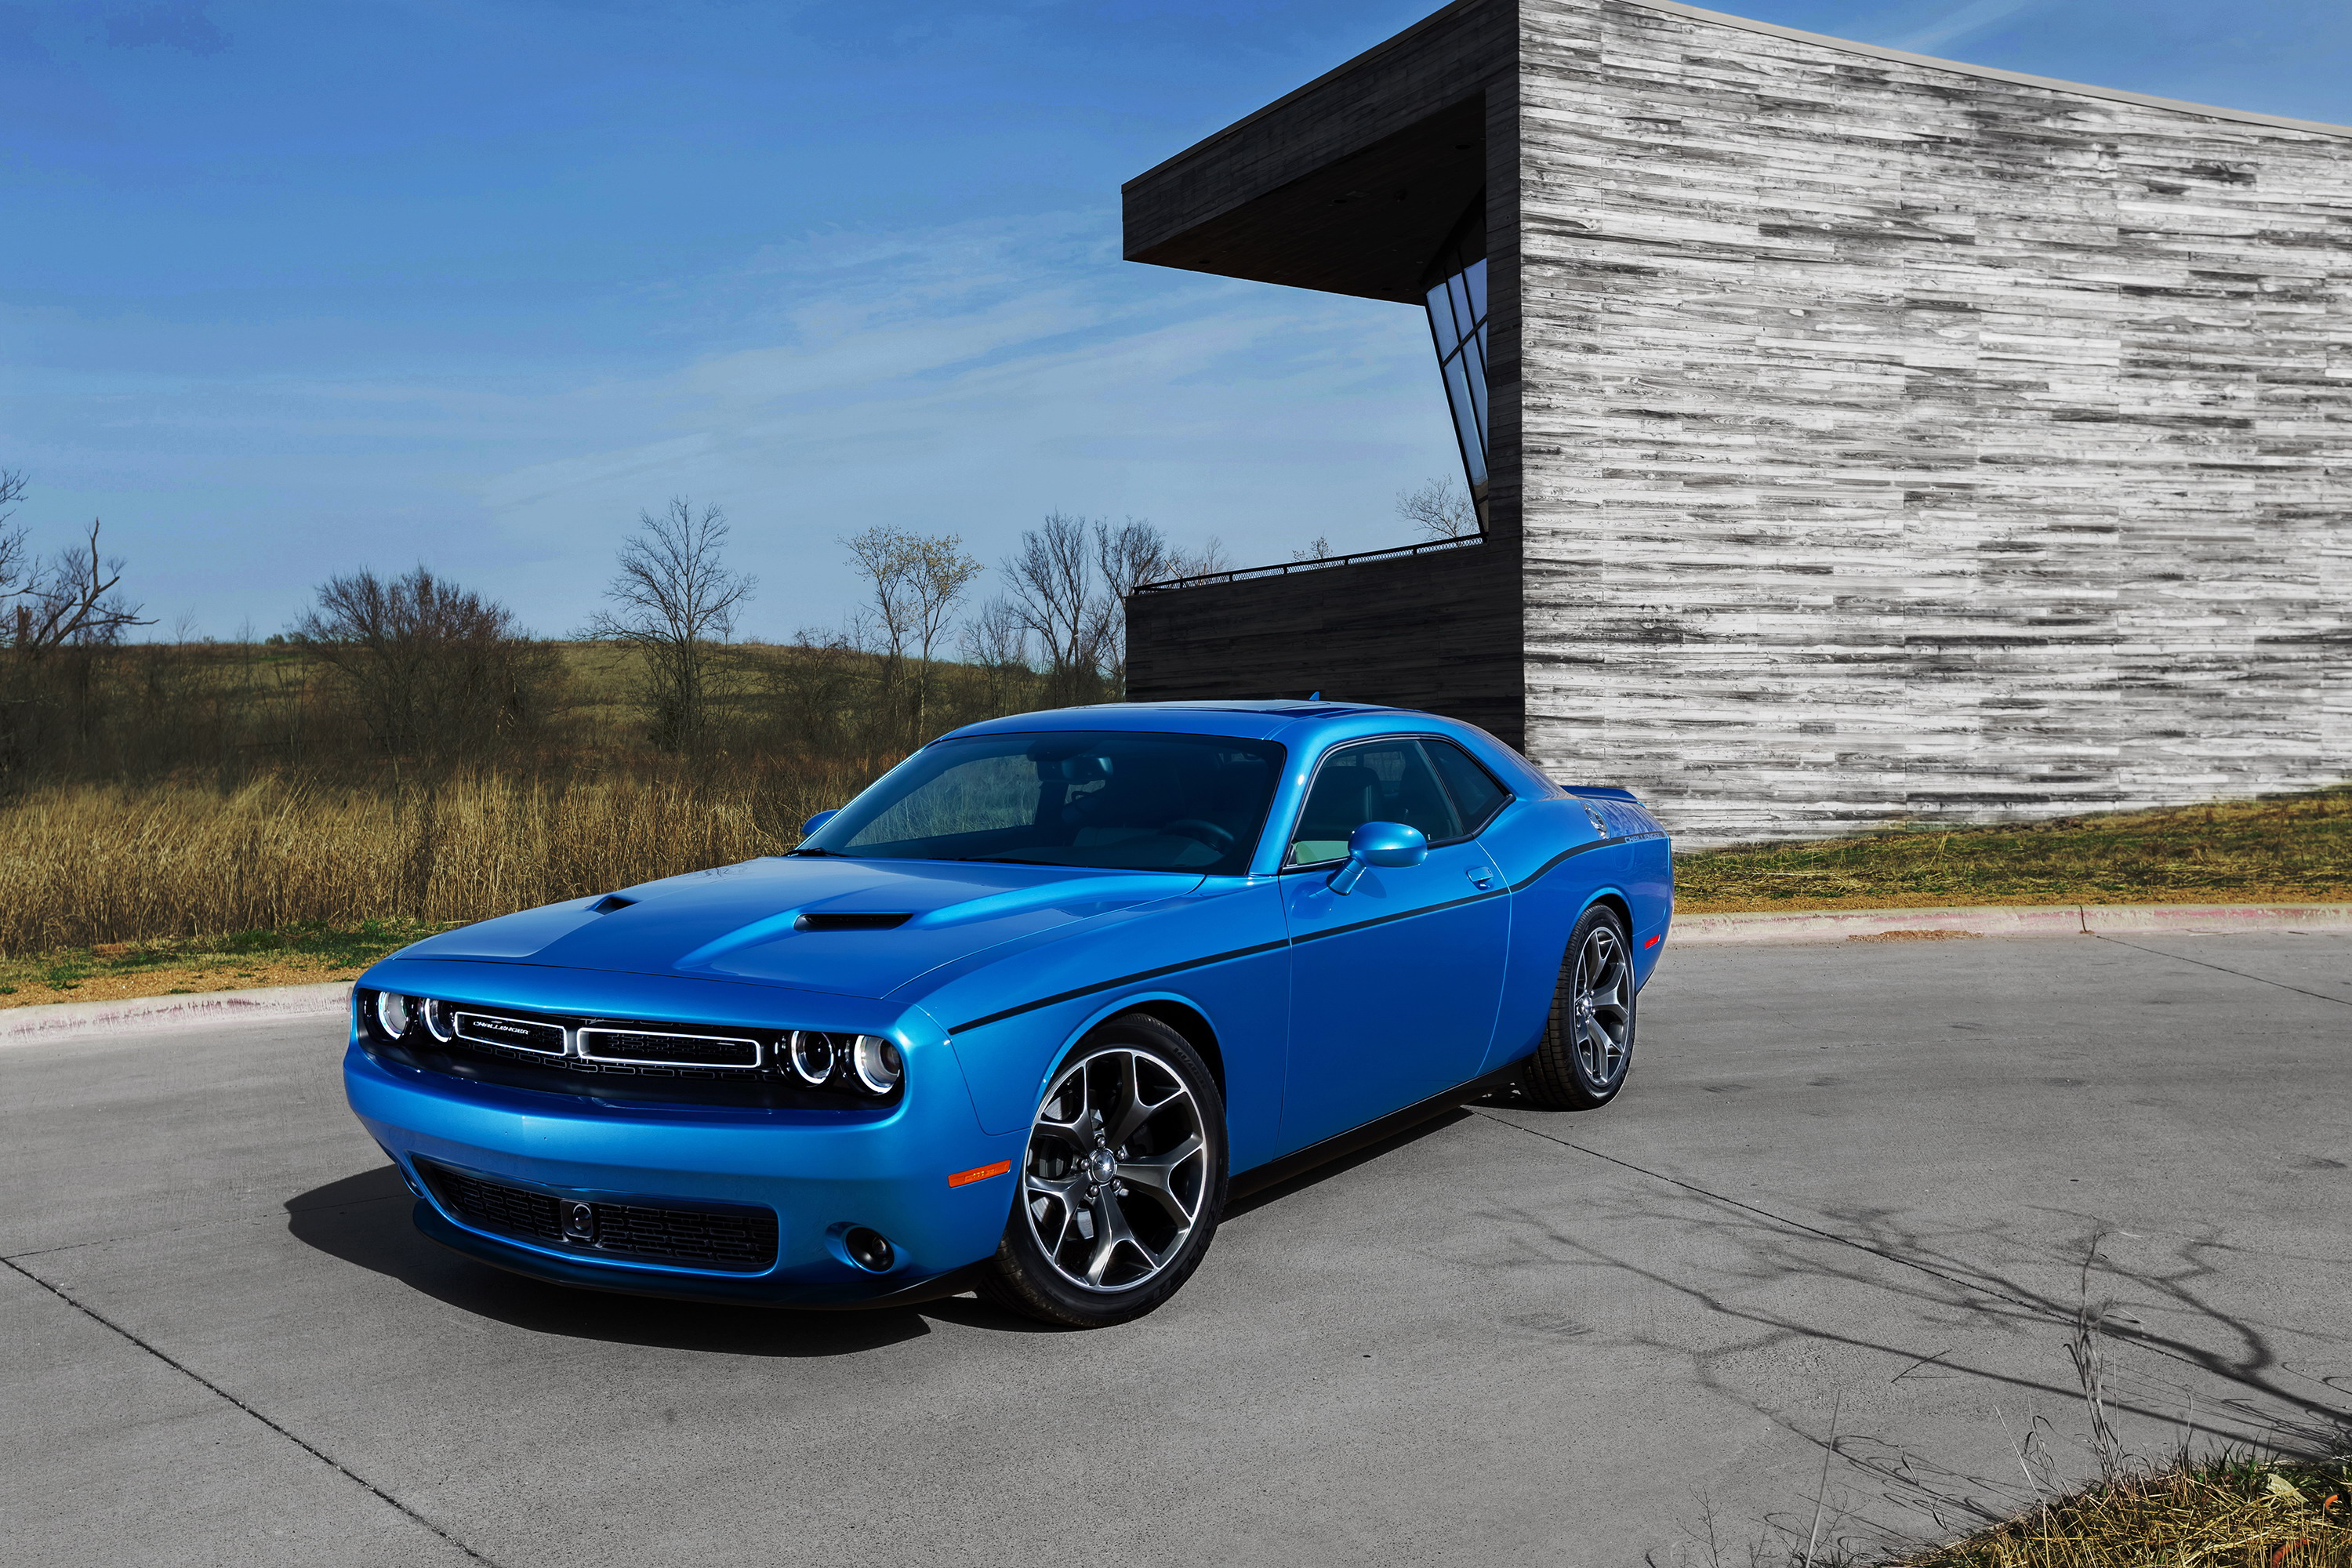 rules to dating car challenger still a muscle sxt grille has the iconic edition retro new dodge